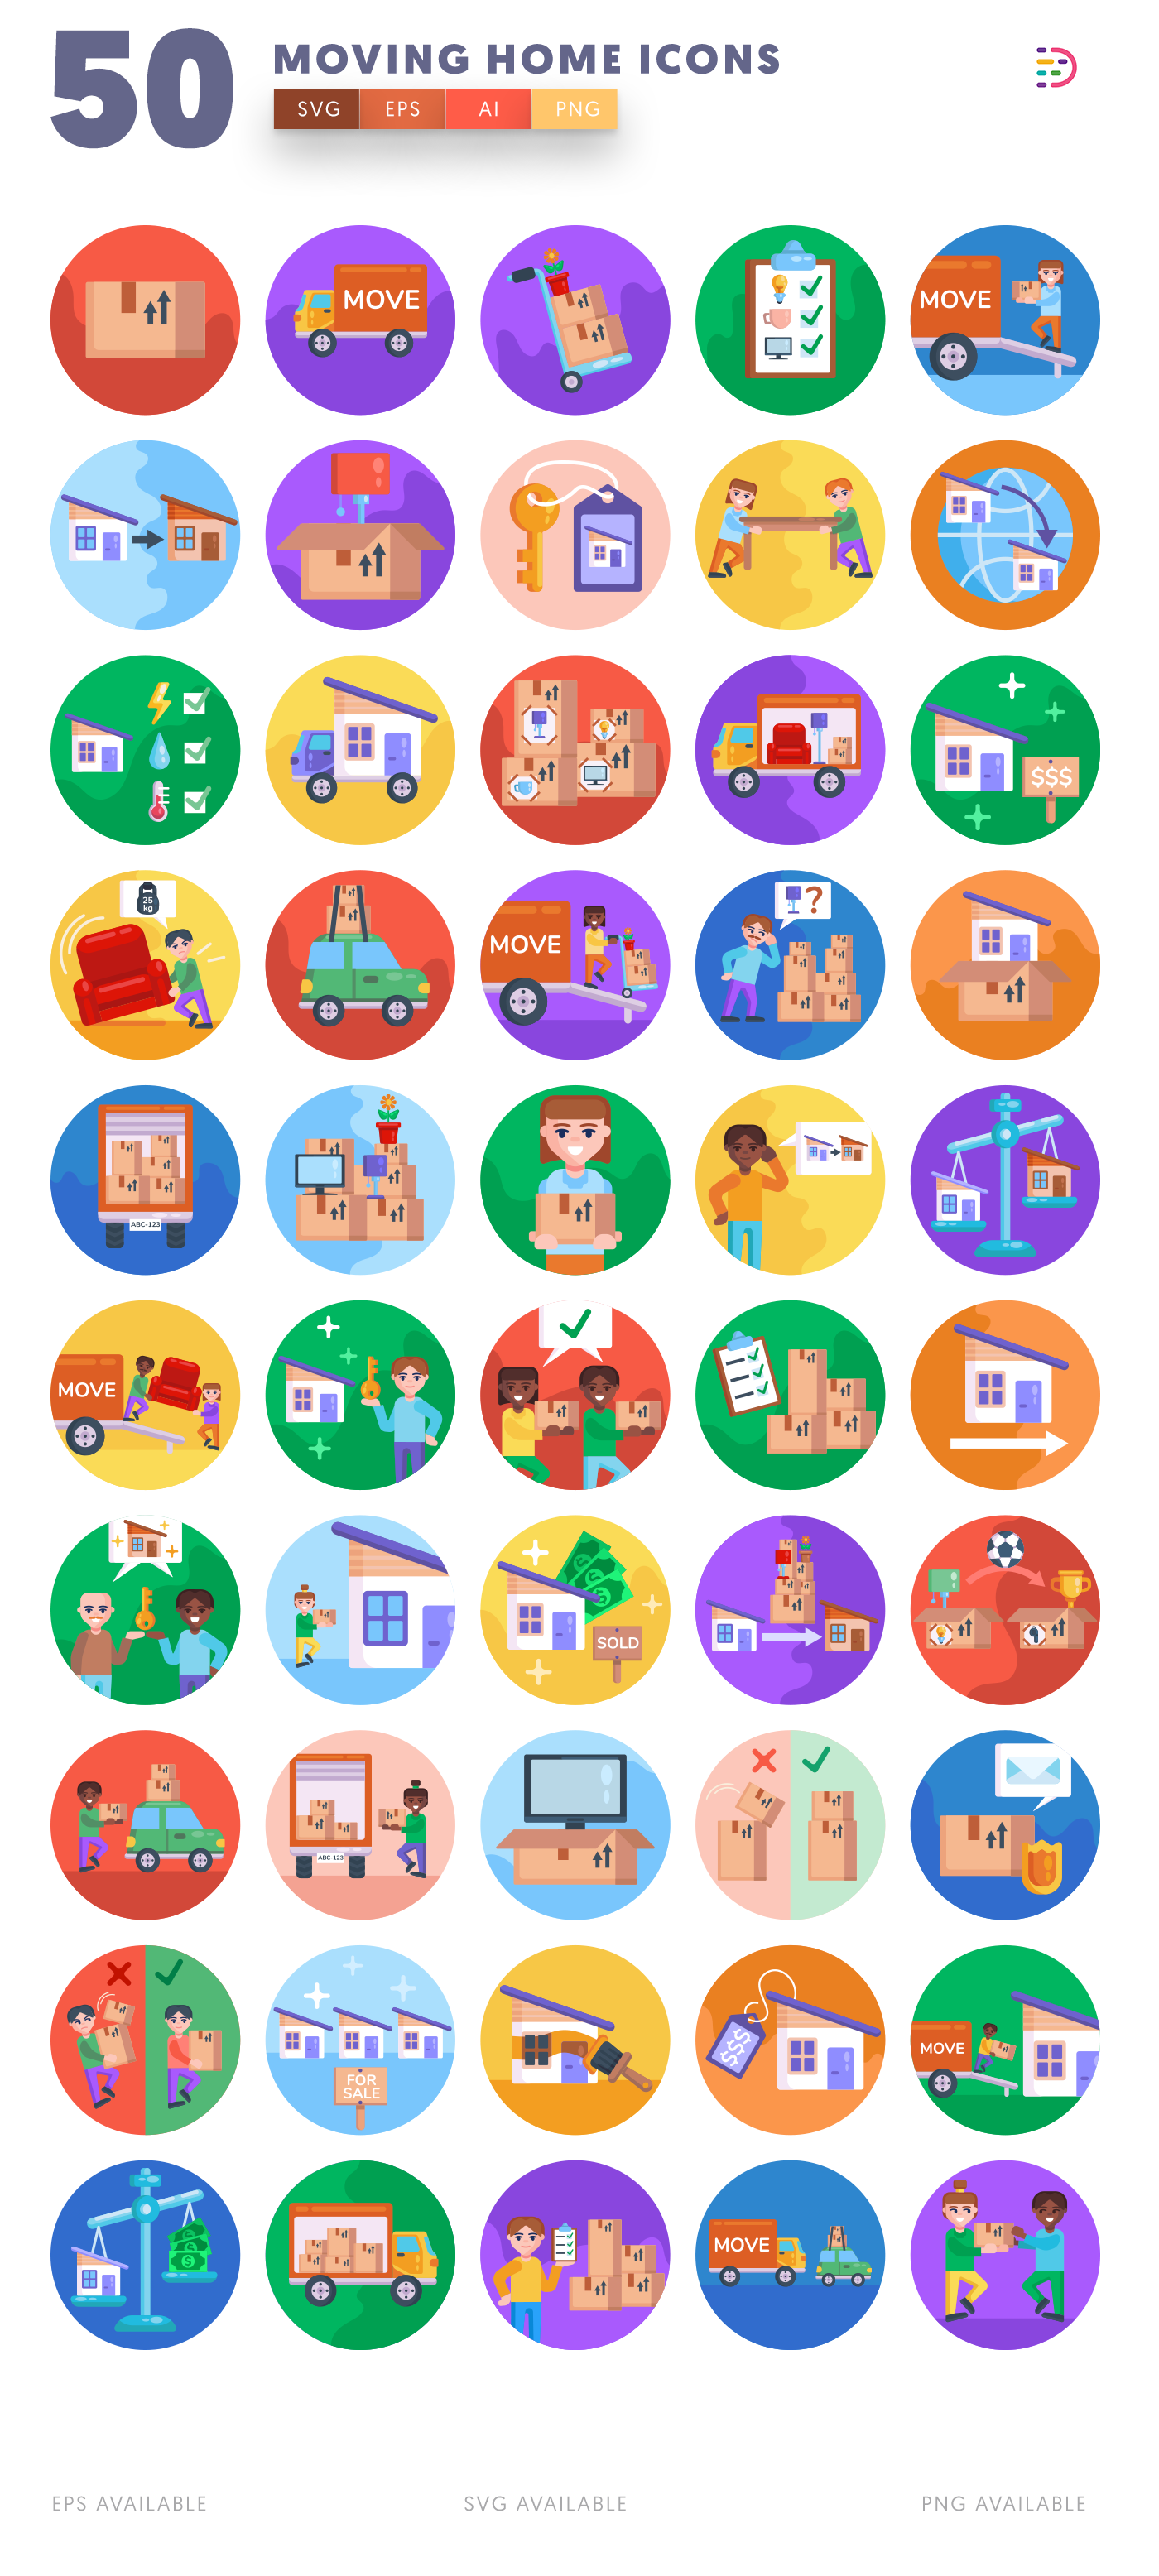 Moving Home icon pack